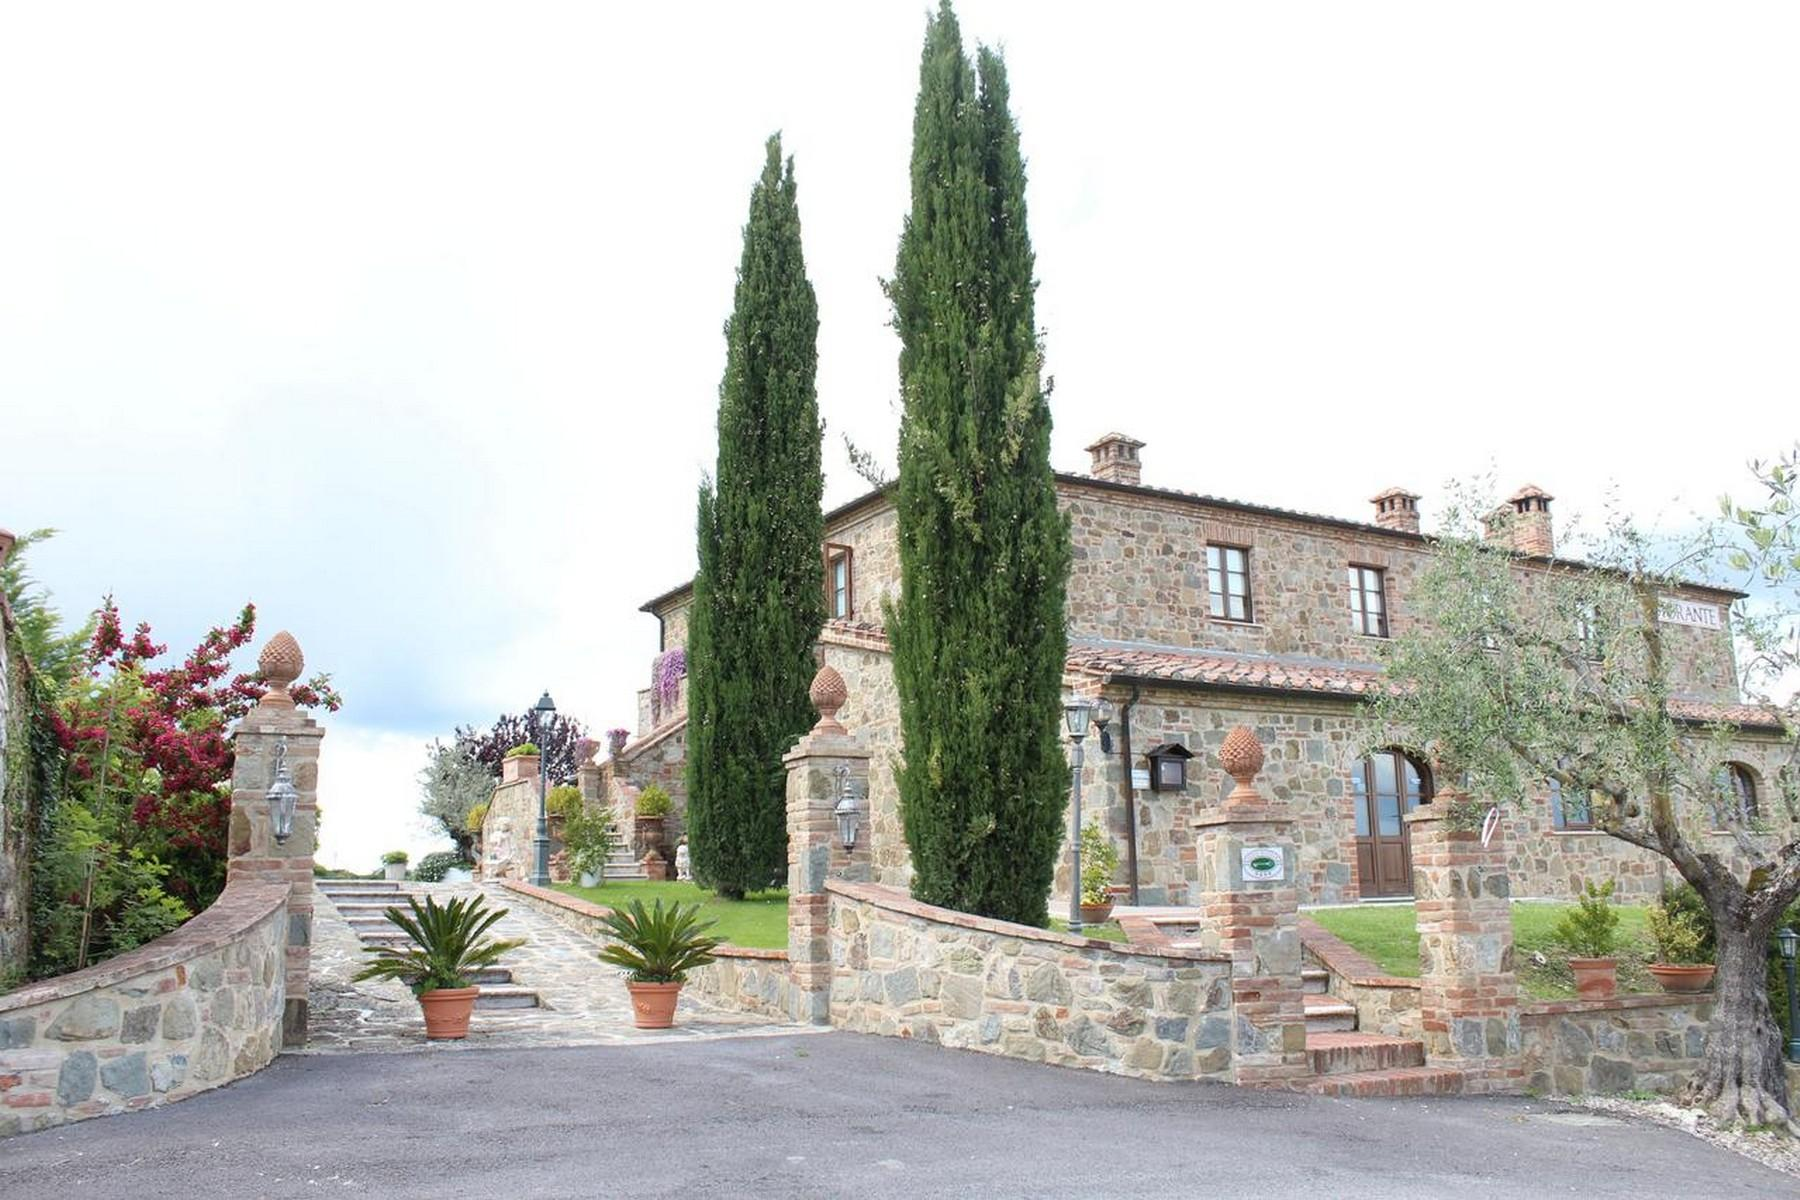 Beautiful Boutique Hotel with Restaurant and SPA in the hills of Torrita di Siena - 7